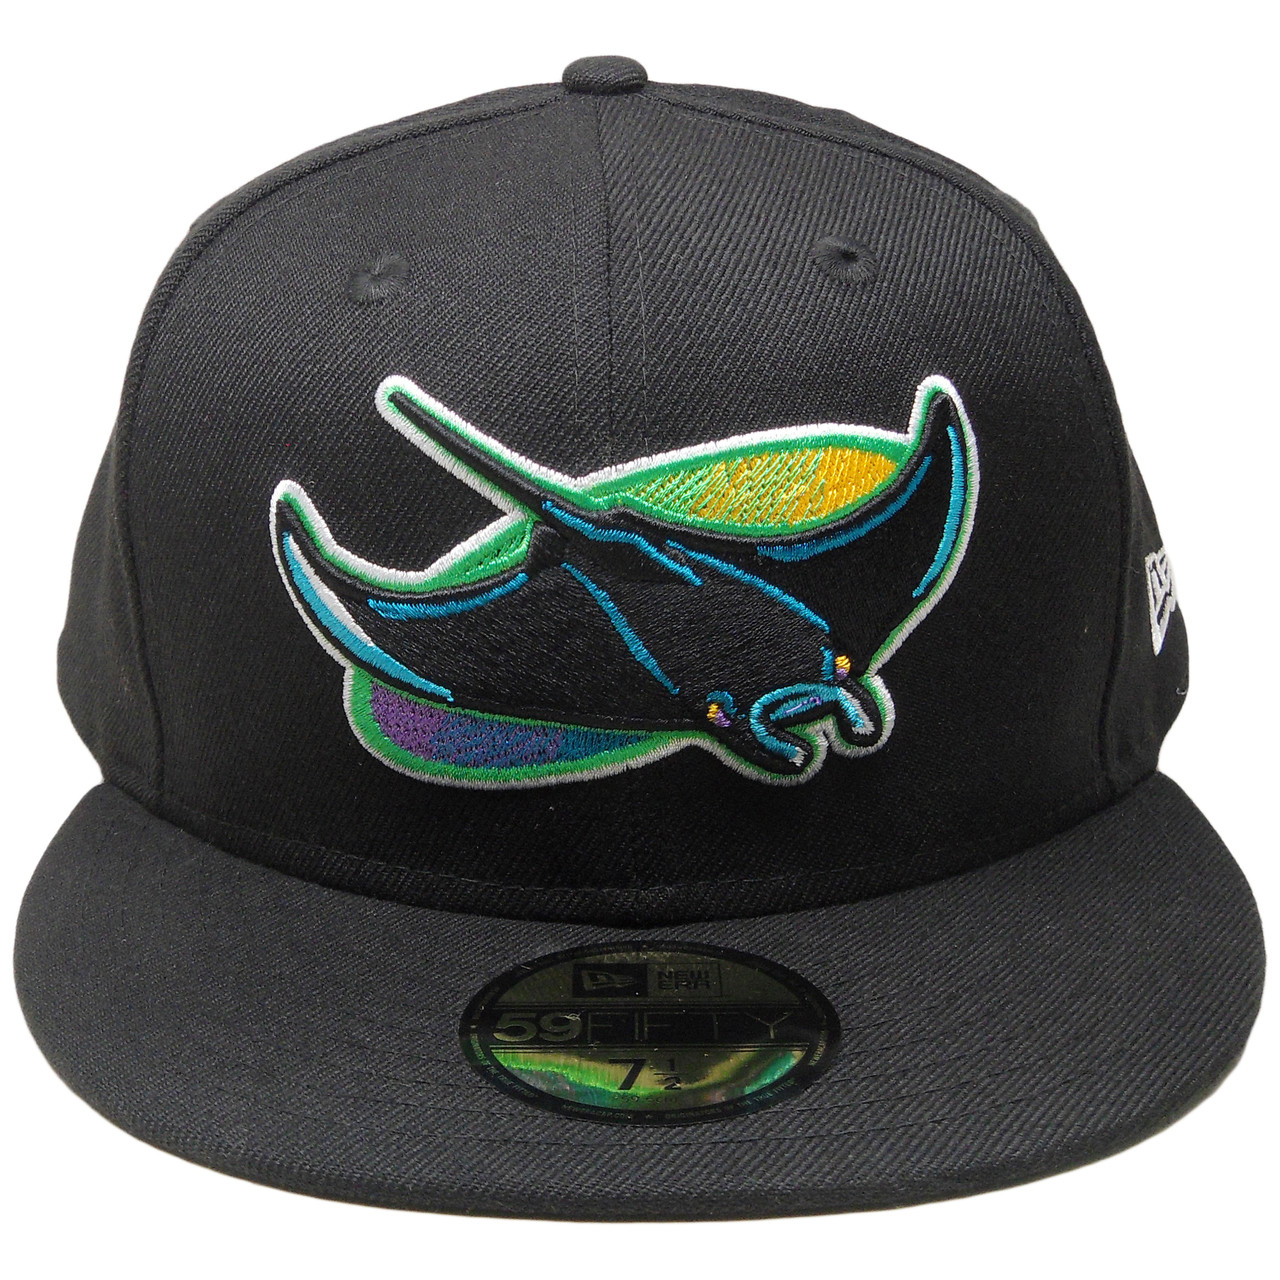 Tampa Bay Rays New Era Cooperstown Series 59Fifty Fitted Hat - Black ... 11844ecaf4d